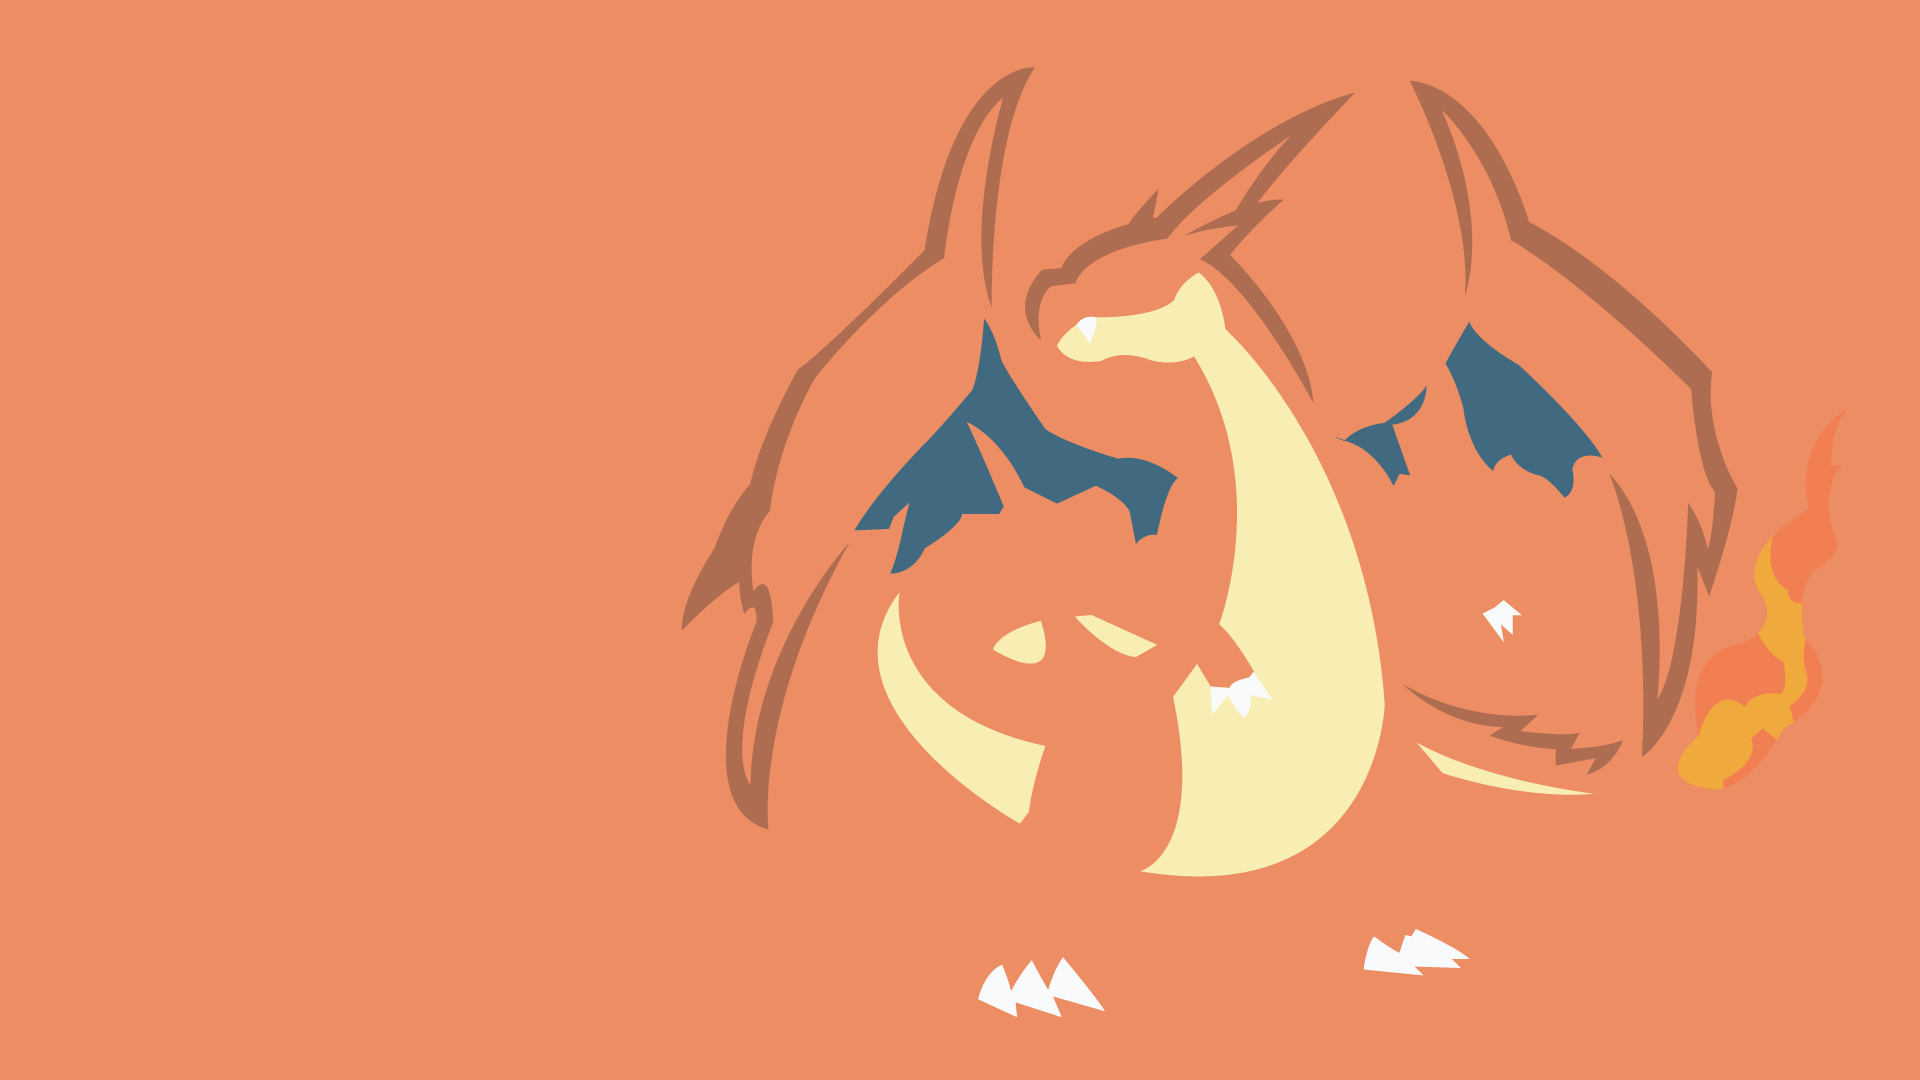 Mega Charizard Y by DashingHero 1920x1080